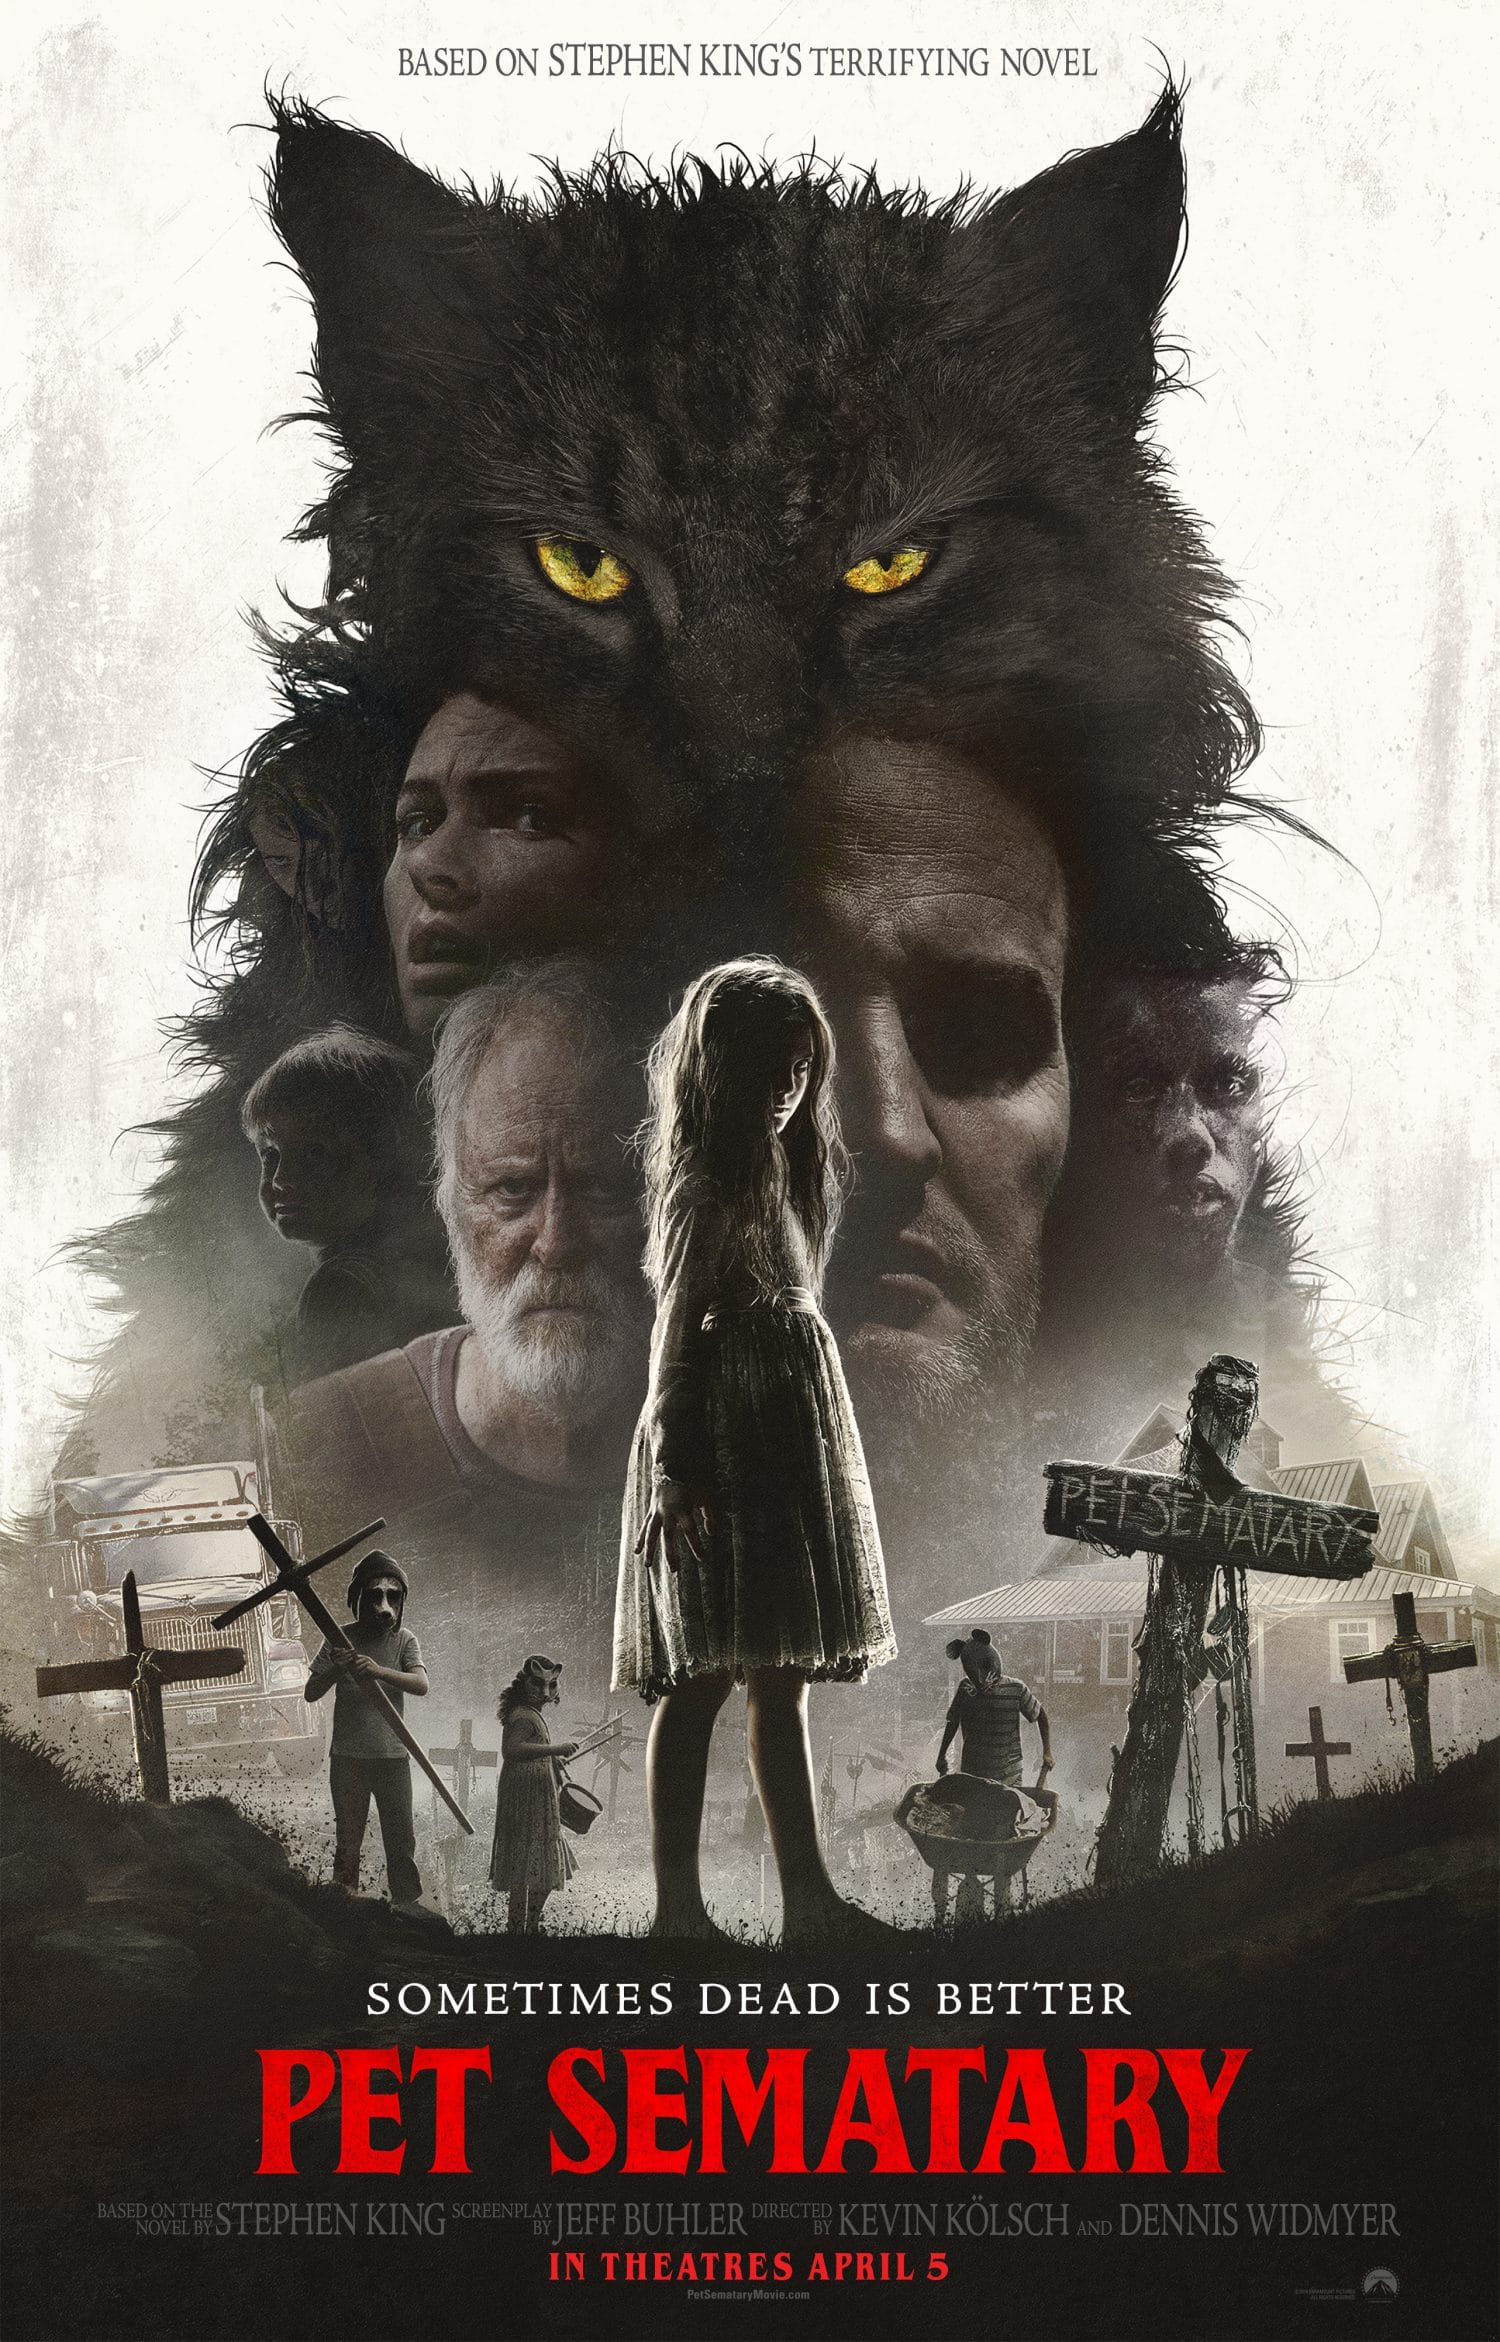 The new Pet Sematary trailer showcases the upcoming movie.